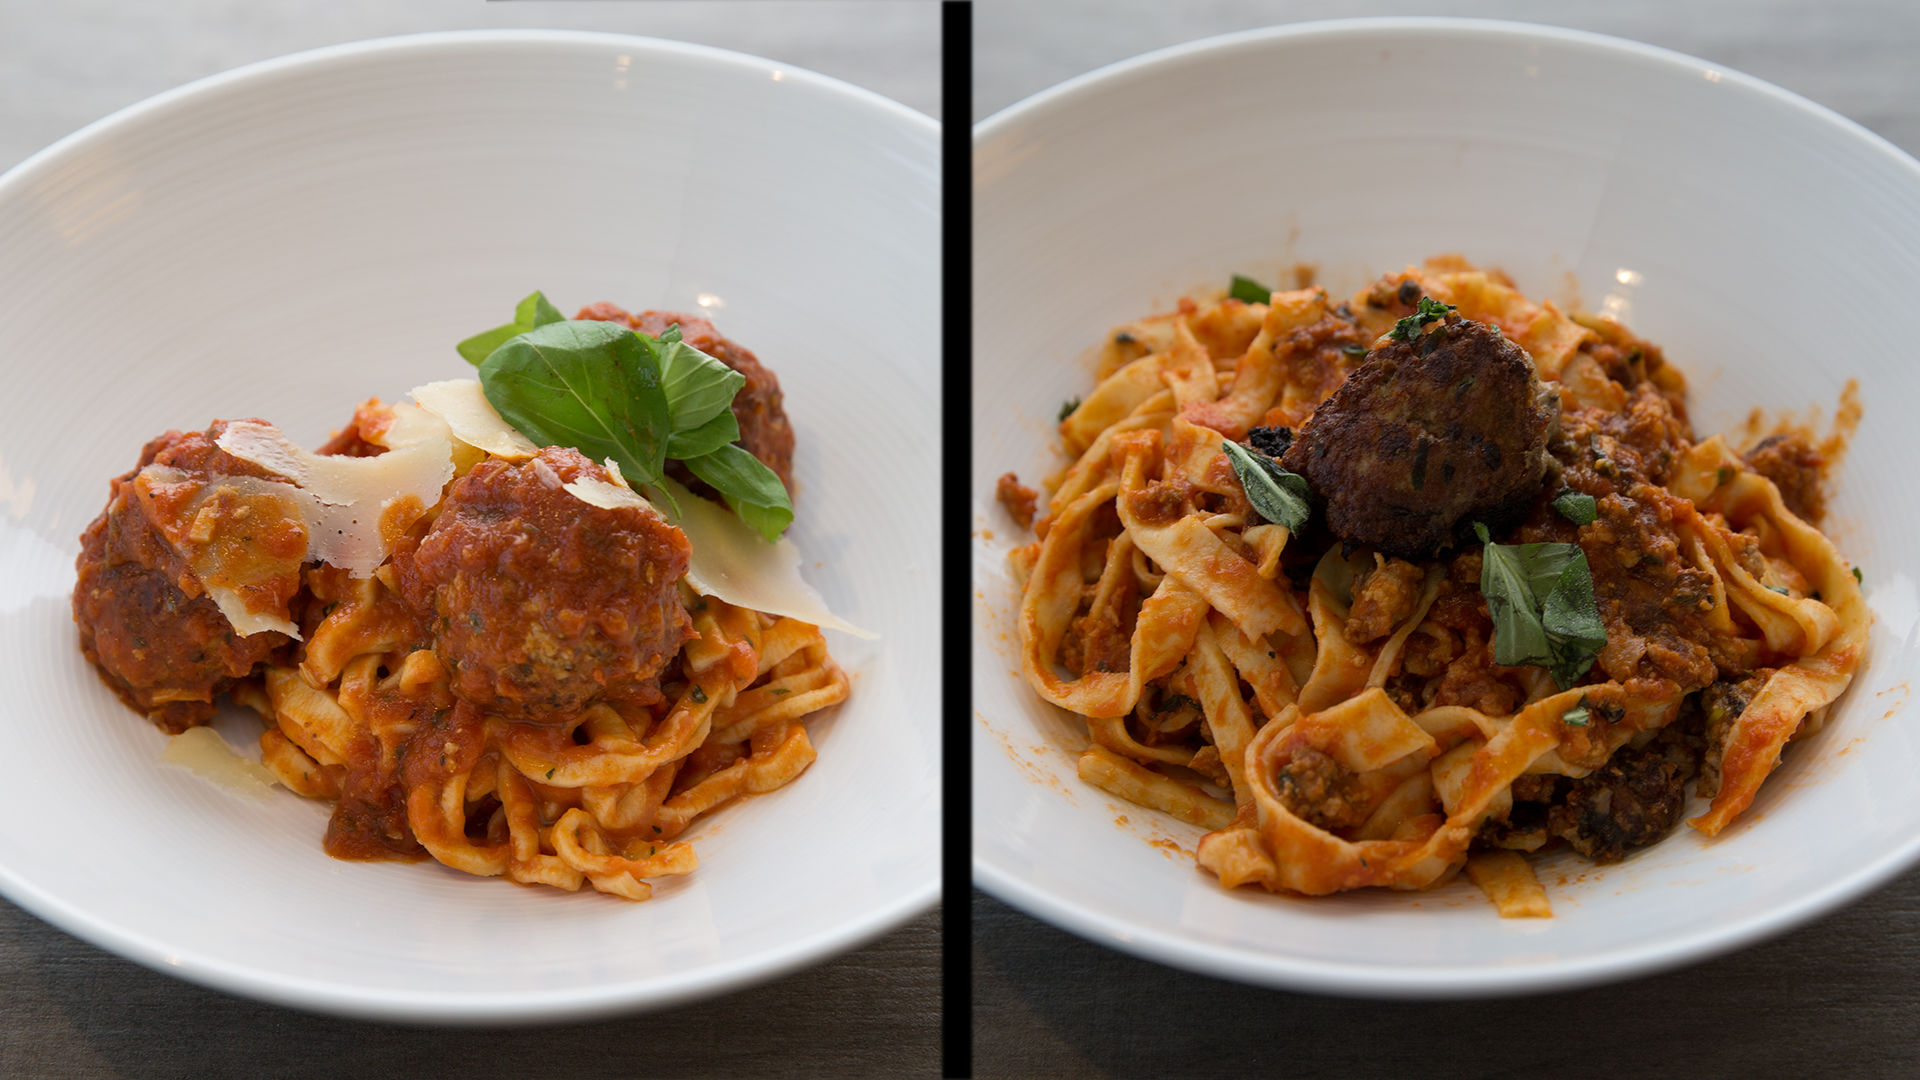 Watch an Amateur Attempt Spaghetti and Meatballs with a Professional Chef